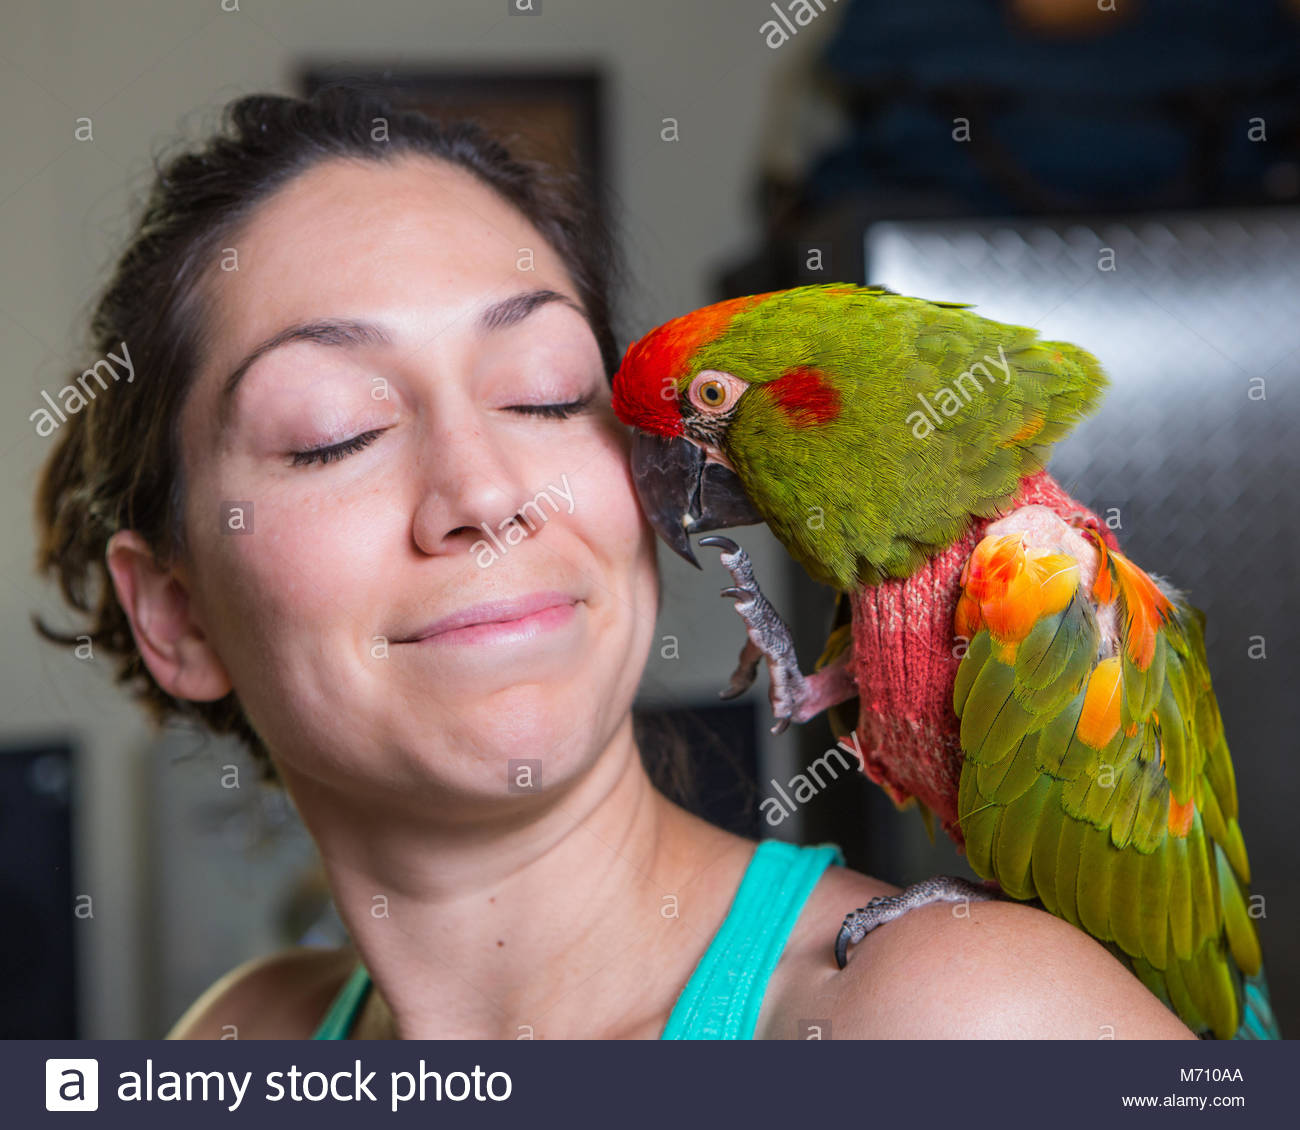 woman macaw stockfotos woman macaw bilder alamy. Black Bedroom Furniture Sets. Home Design Ideas